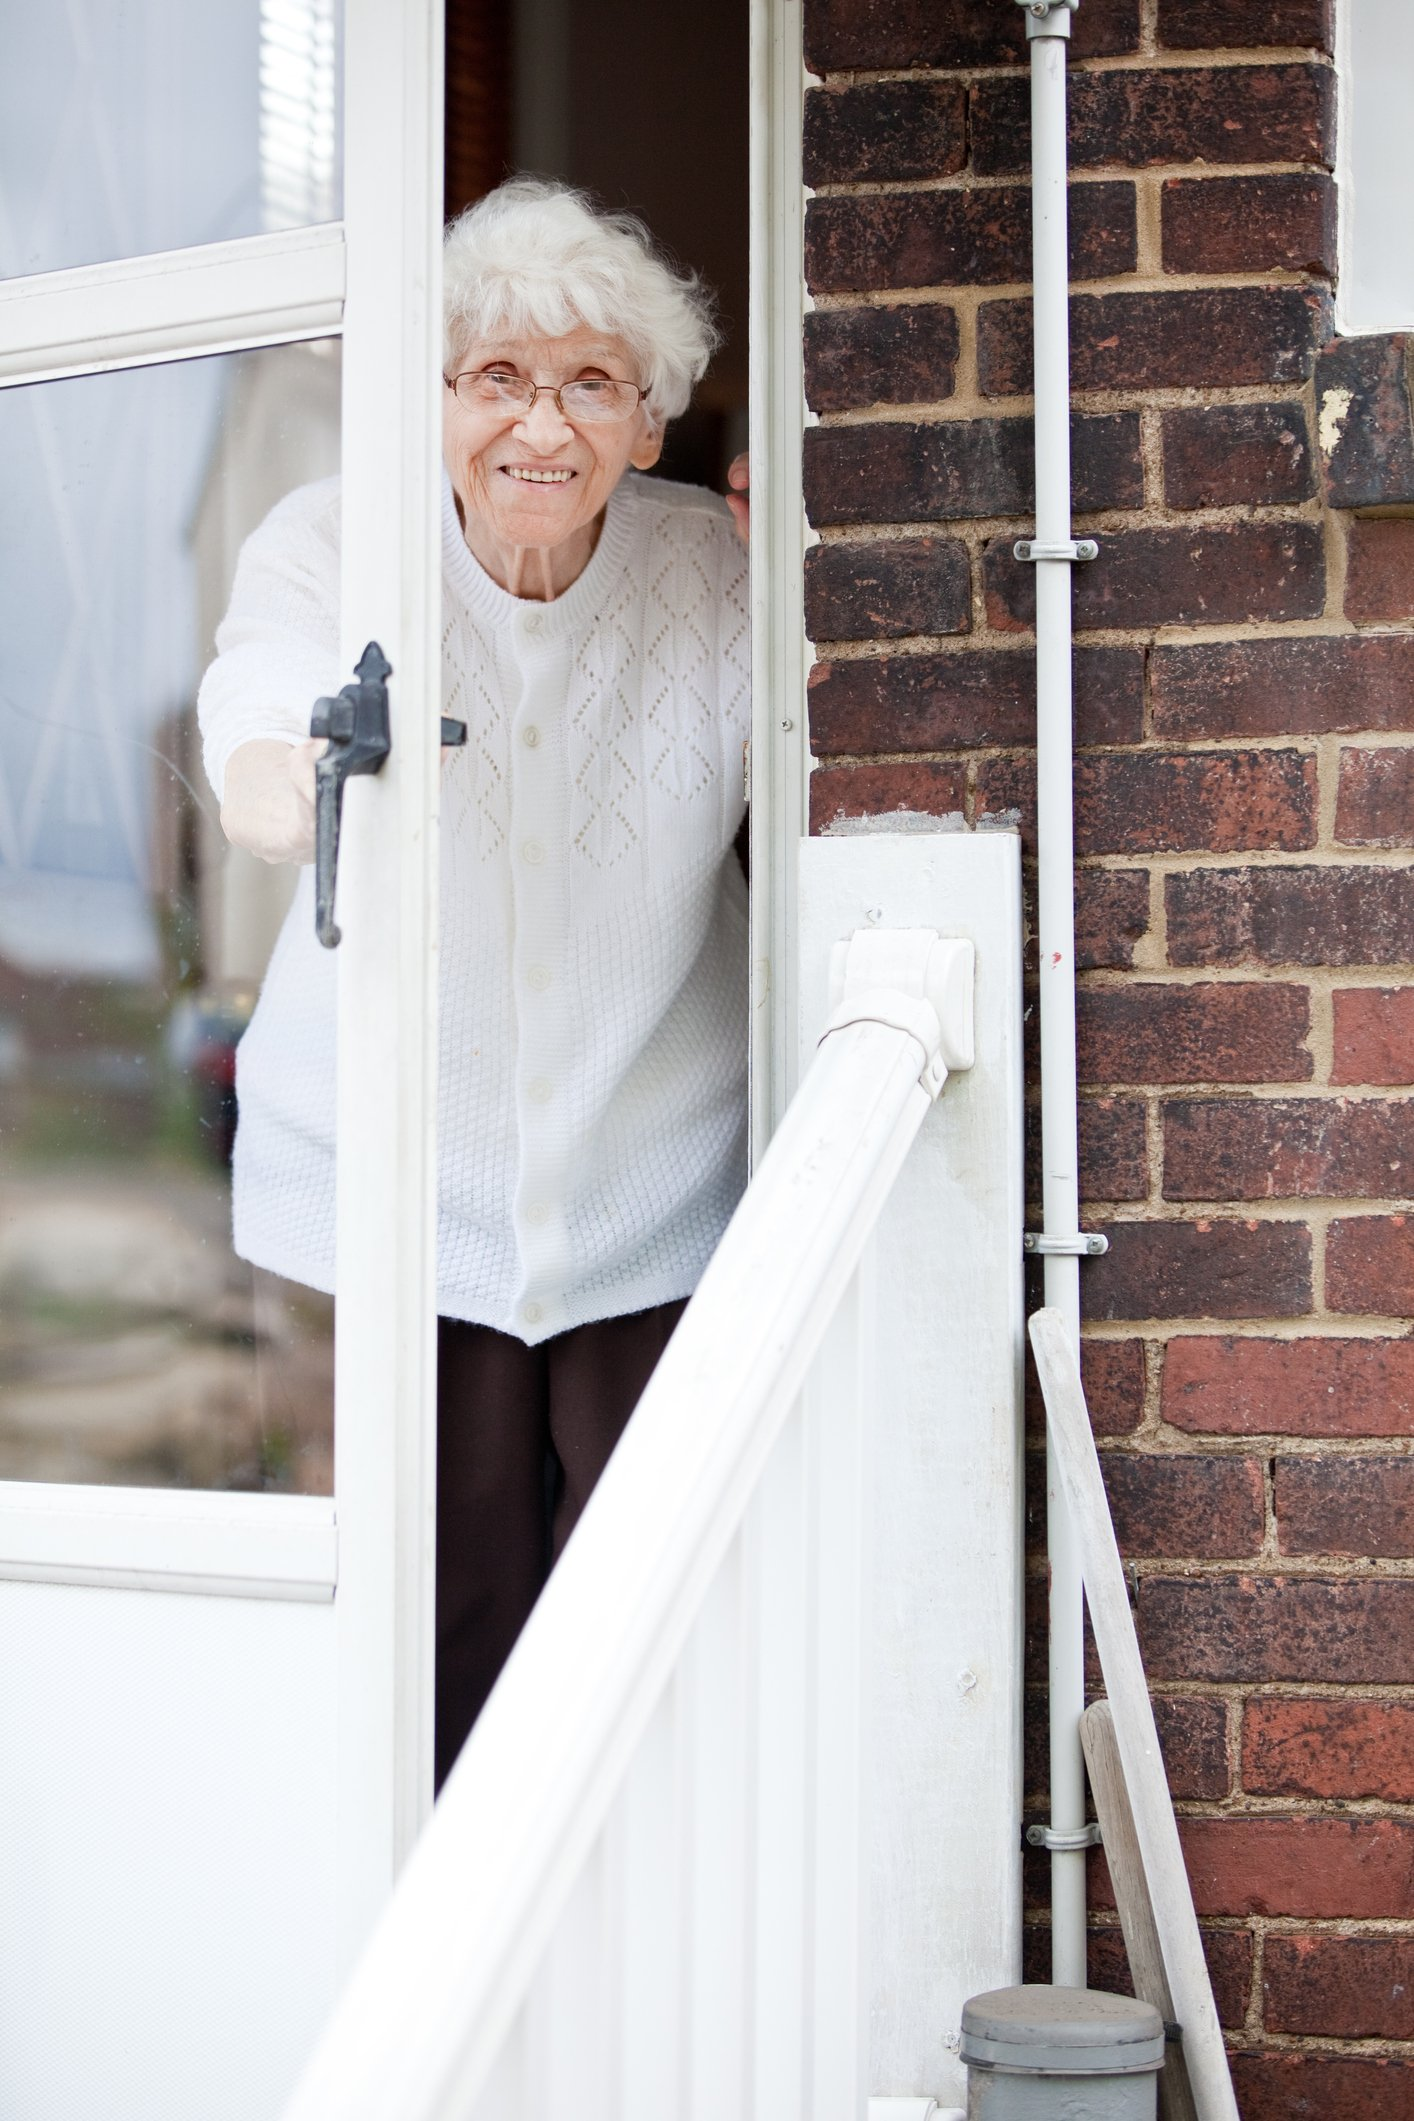 Mary opened her door to welcome Officer Stanton.   Photo: Getty Images